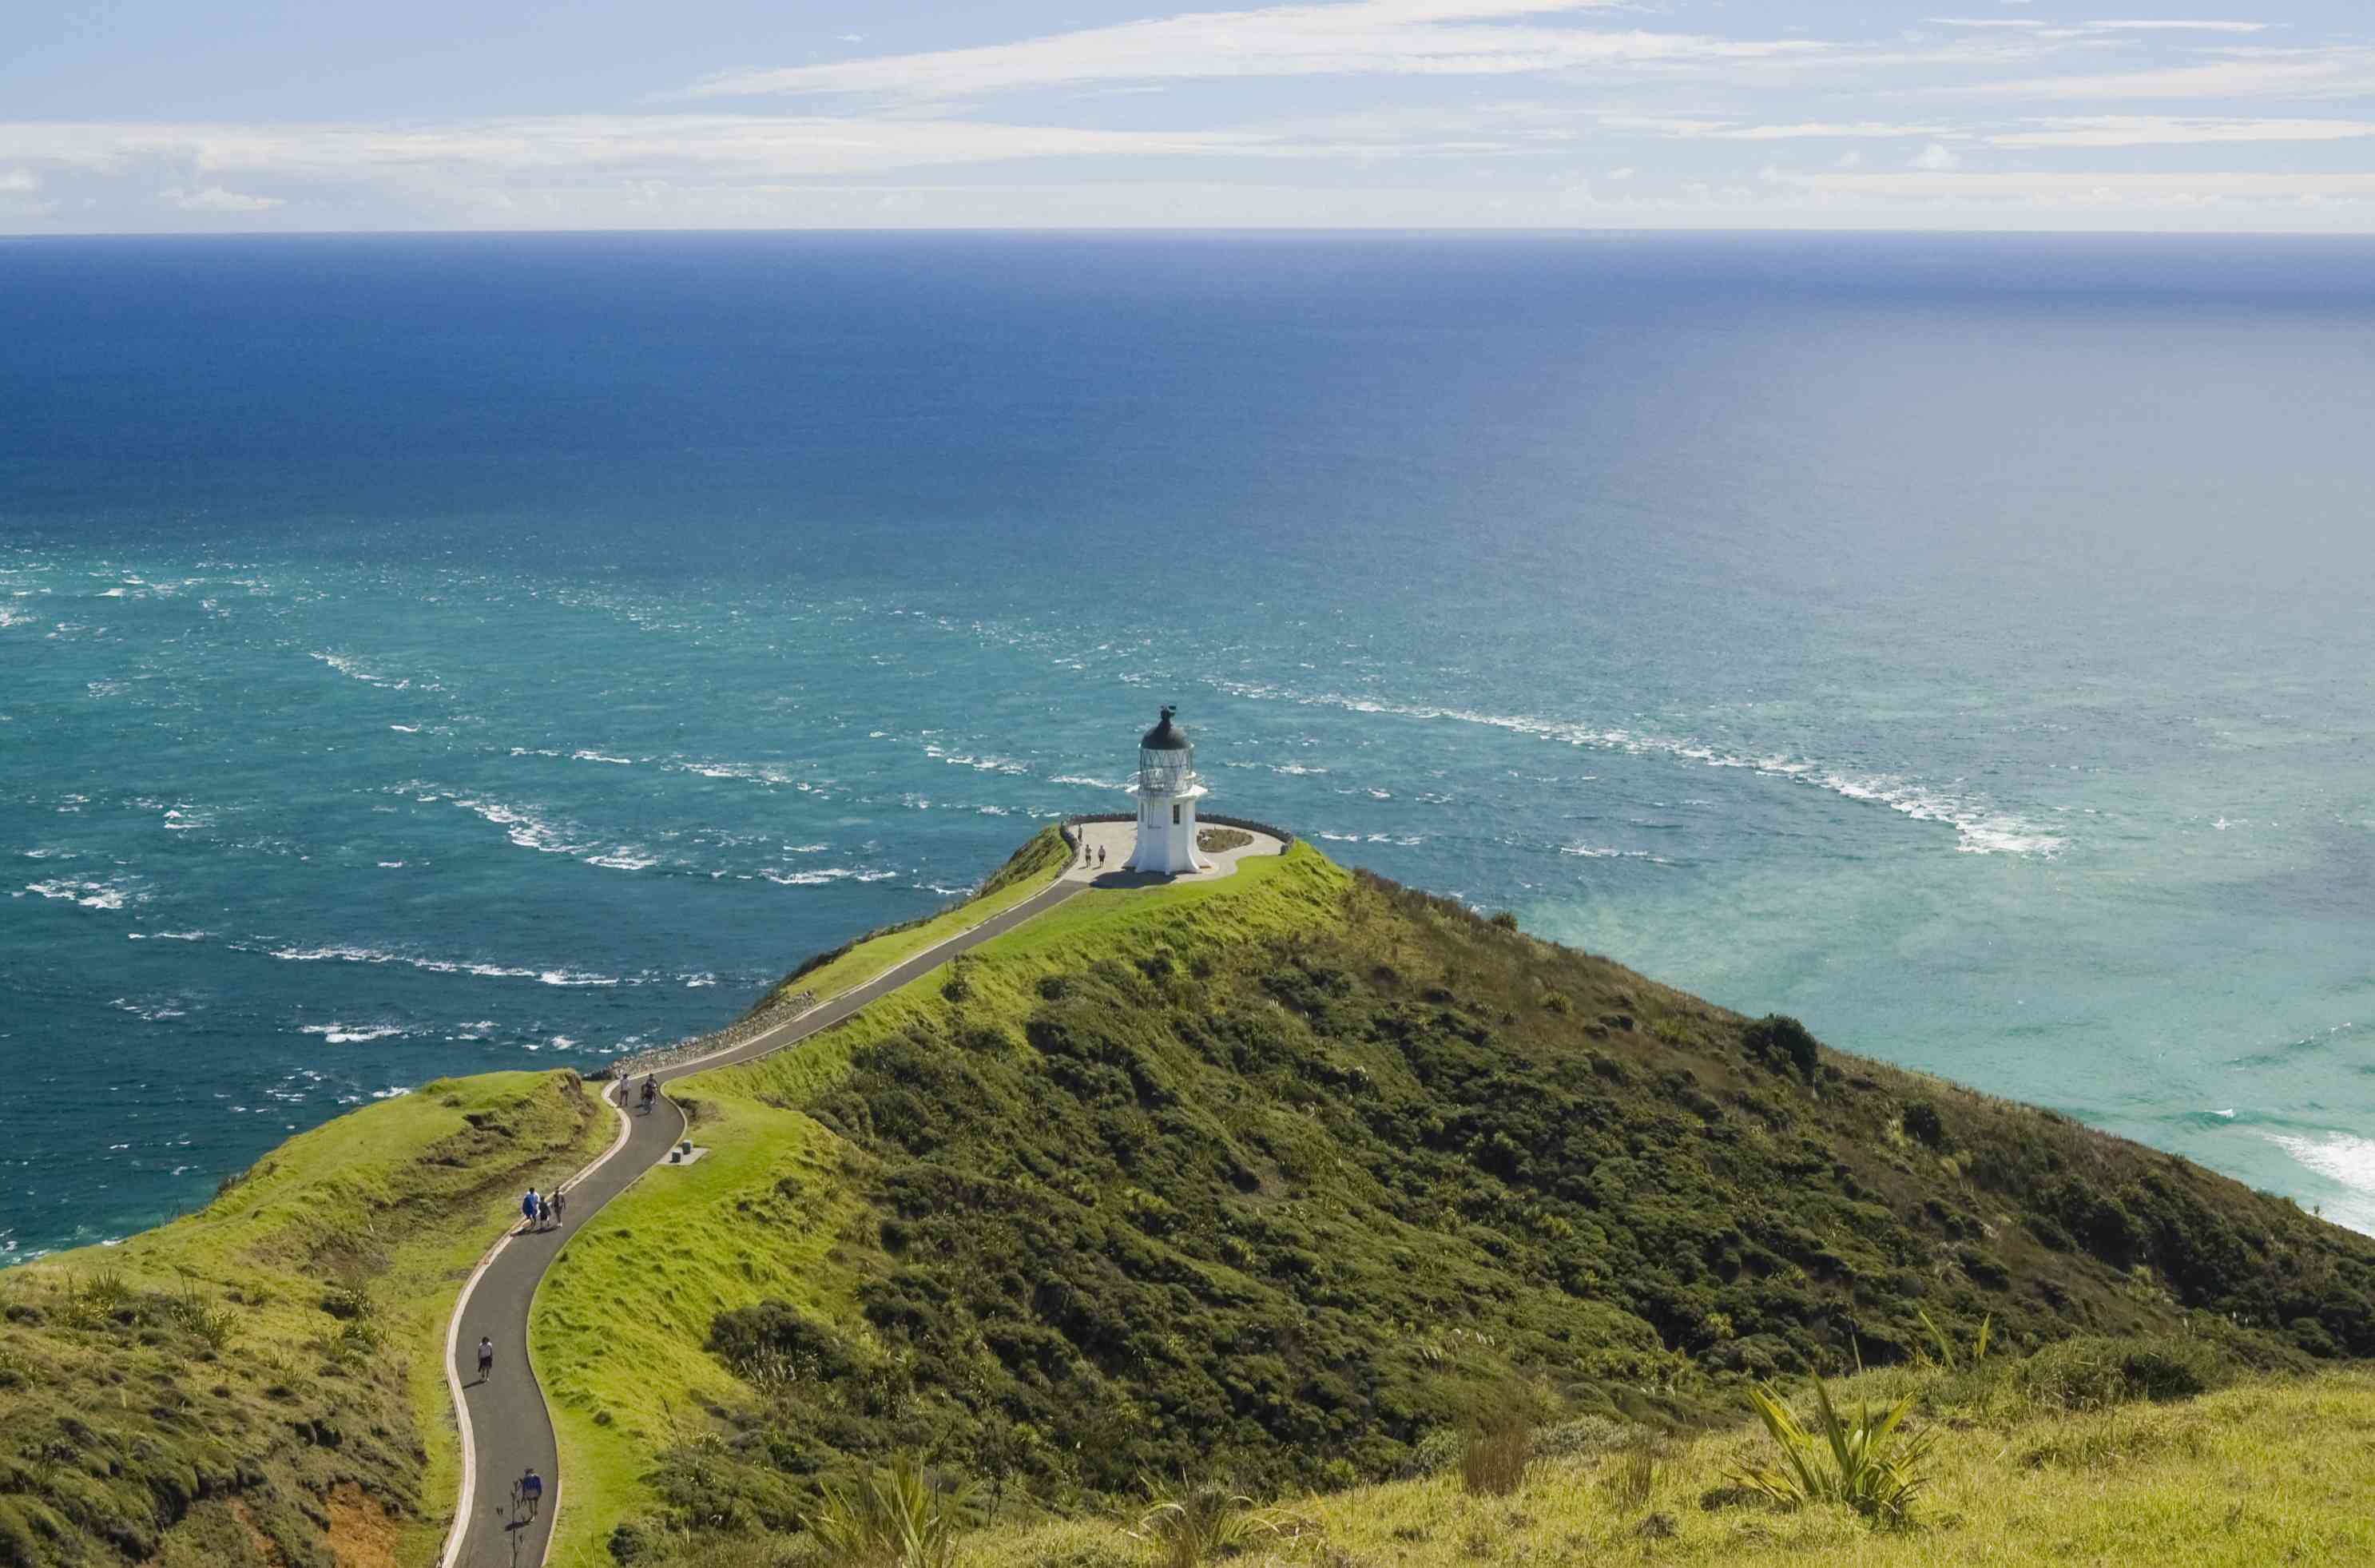 Aerial view of the Cape Reinga lighthouse atop a mountain covered in lush green vegetation where the Tasman Sea and the Pacific Ocean meet